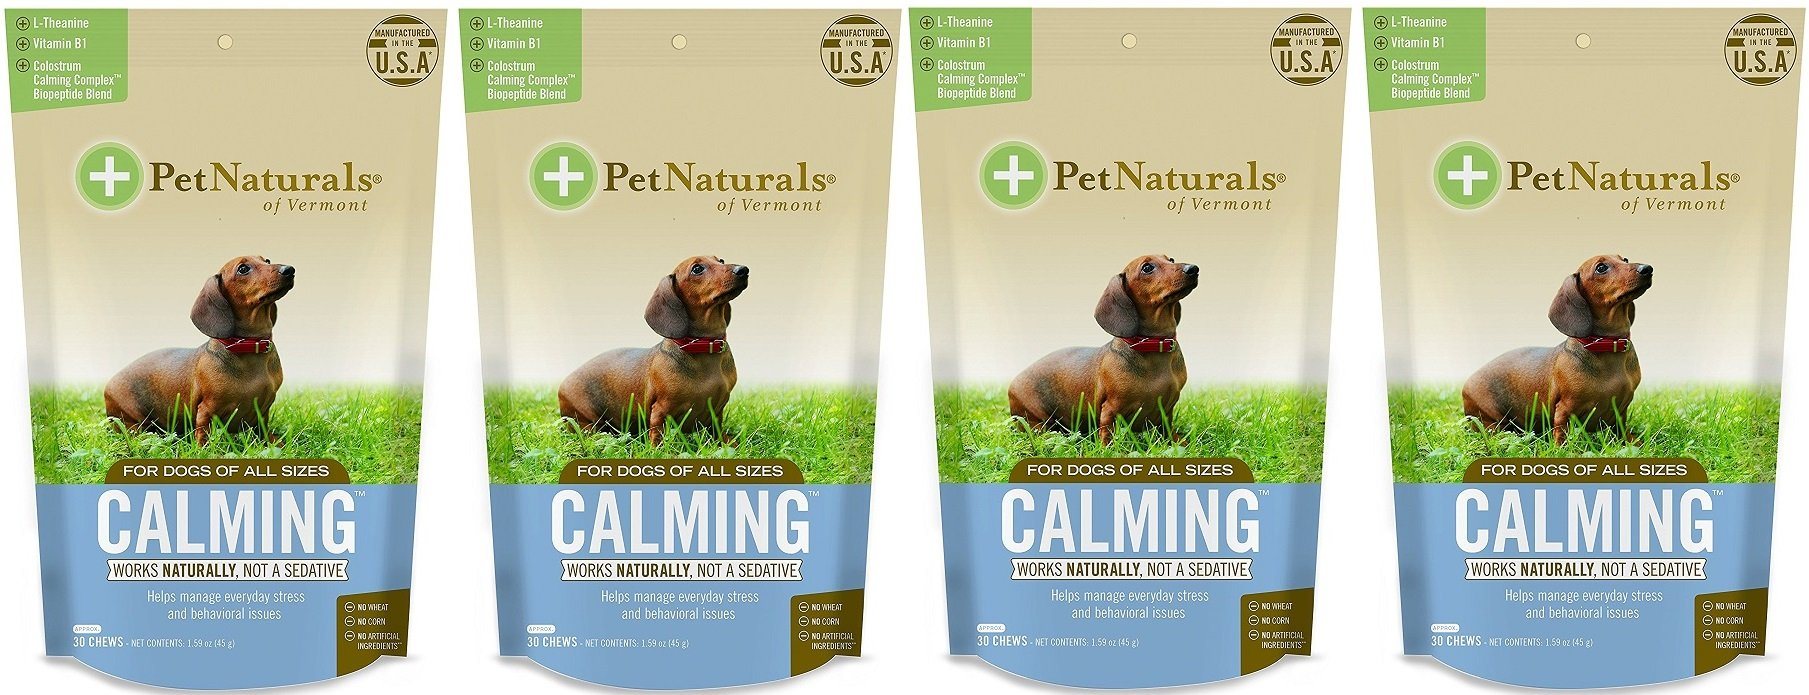 Pet Naturals Calming for Dogs, Natural Behavior Support Formula, 30 Bite Sized Chews bundled with Reusable Travel Pill Pouch, , 4 Pack